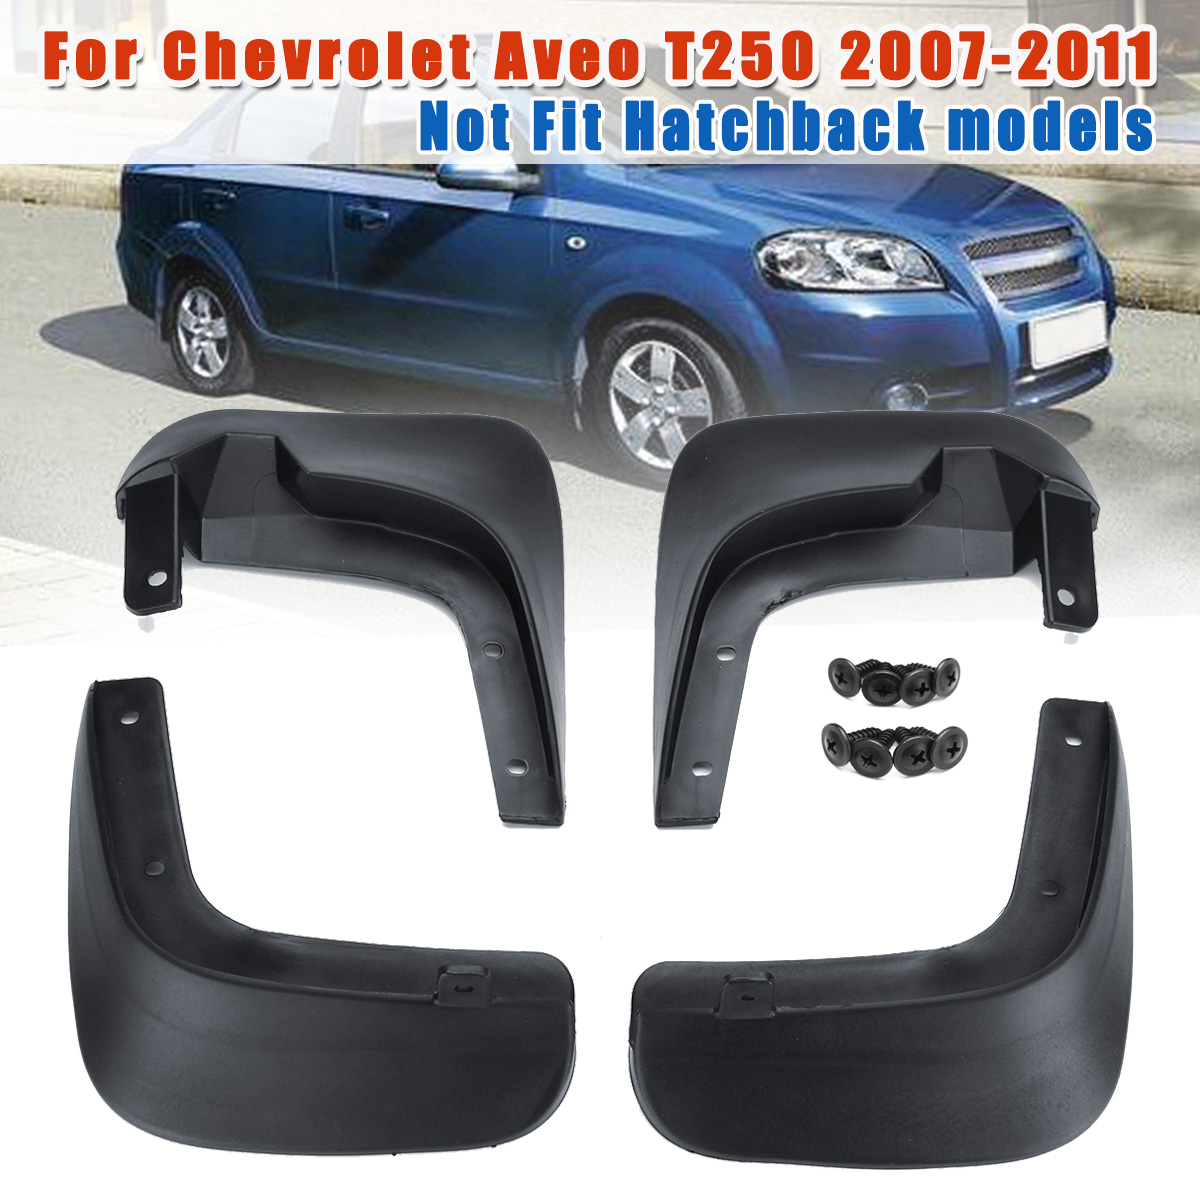 for Chevrolet <font><b>Aveo</b></font> <font><b>T250</b></font> 2007 2008 2009 2010 2011 Car Mud Flaps Front Rear Fender Flares Auto Mudflaps Mudguards Splash Guard image